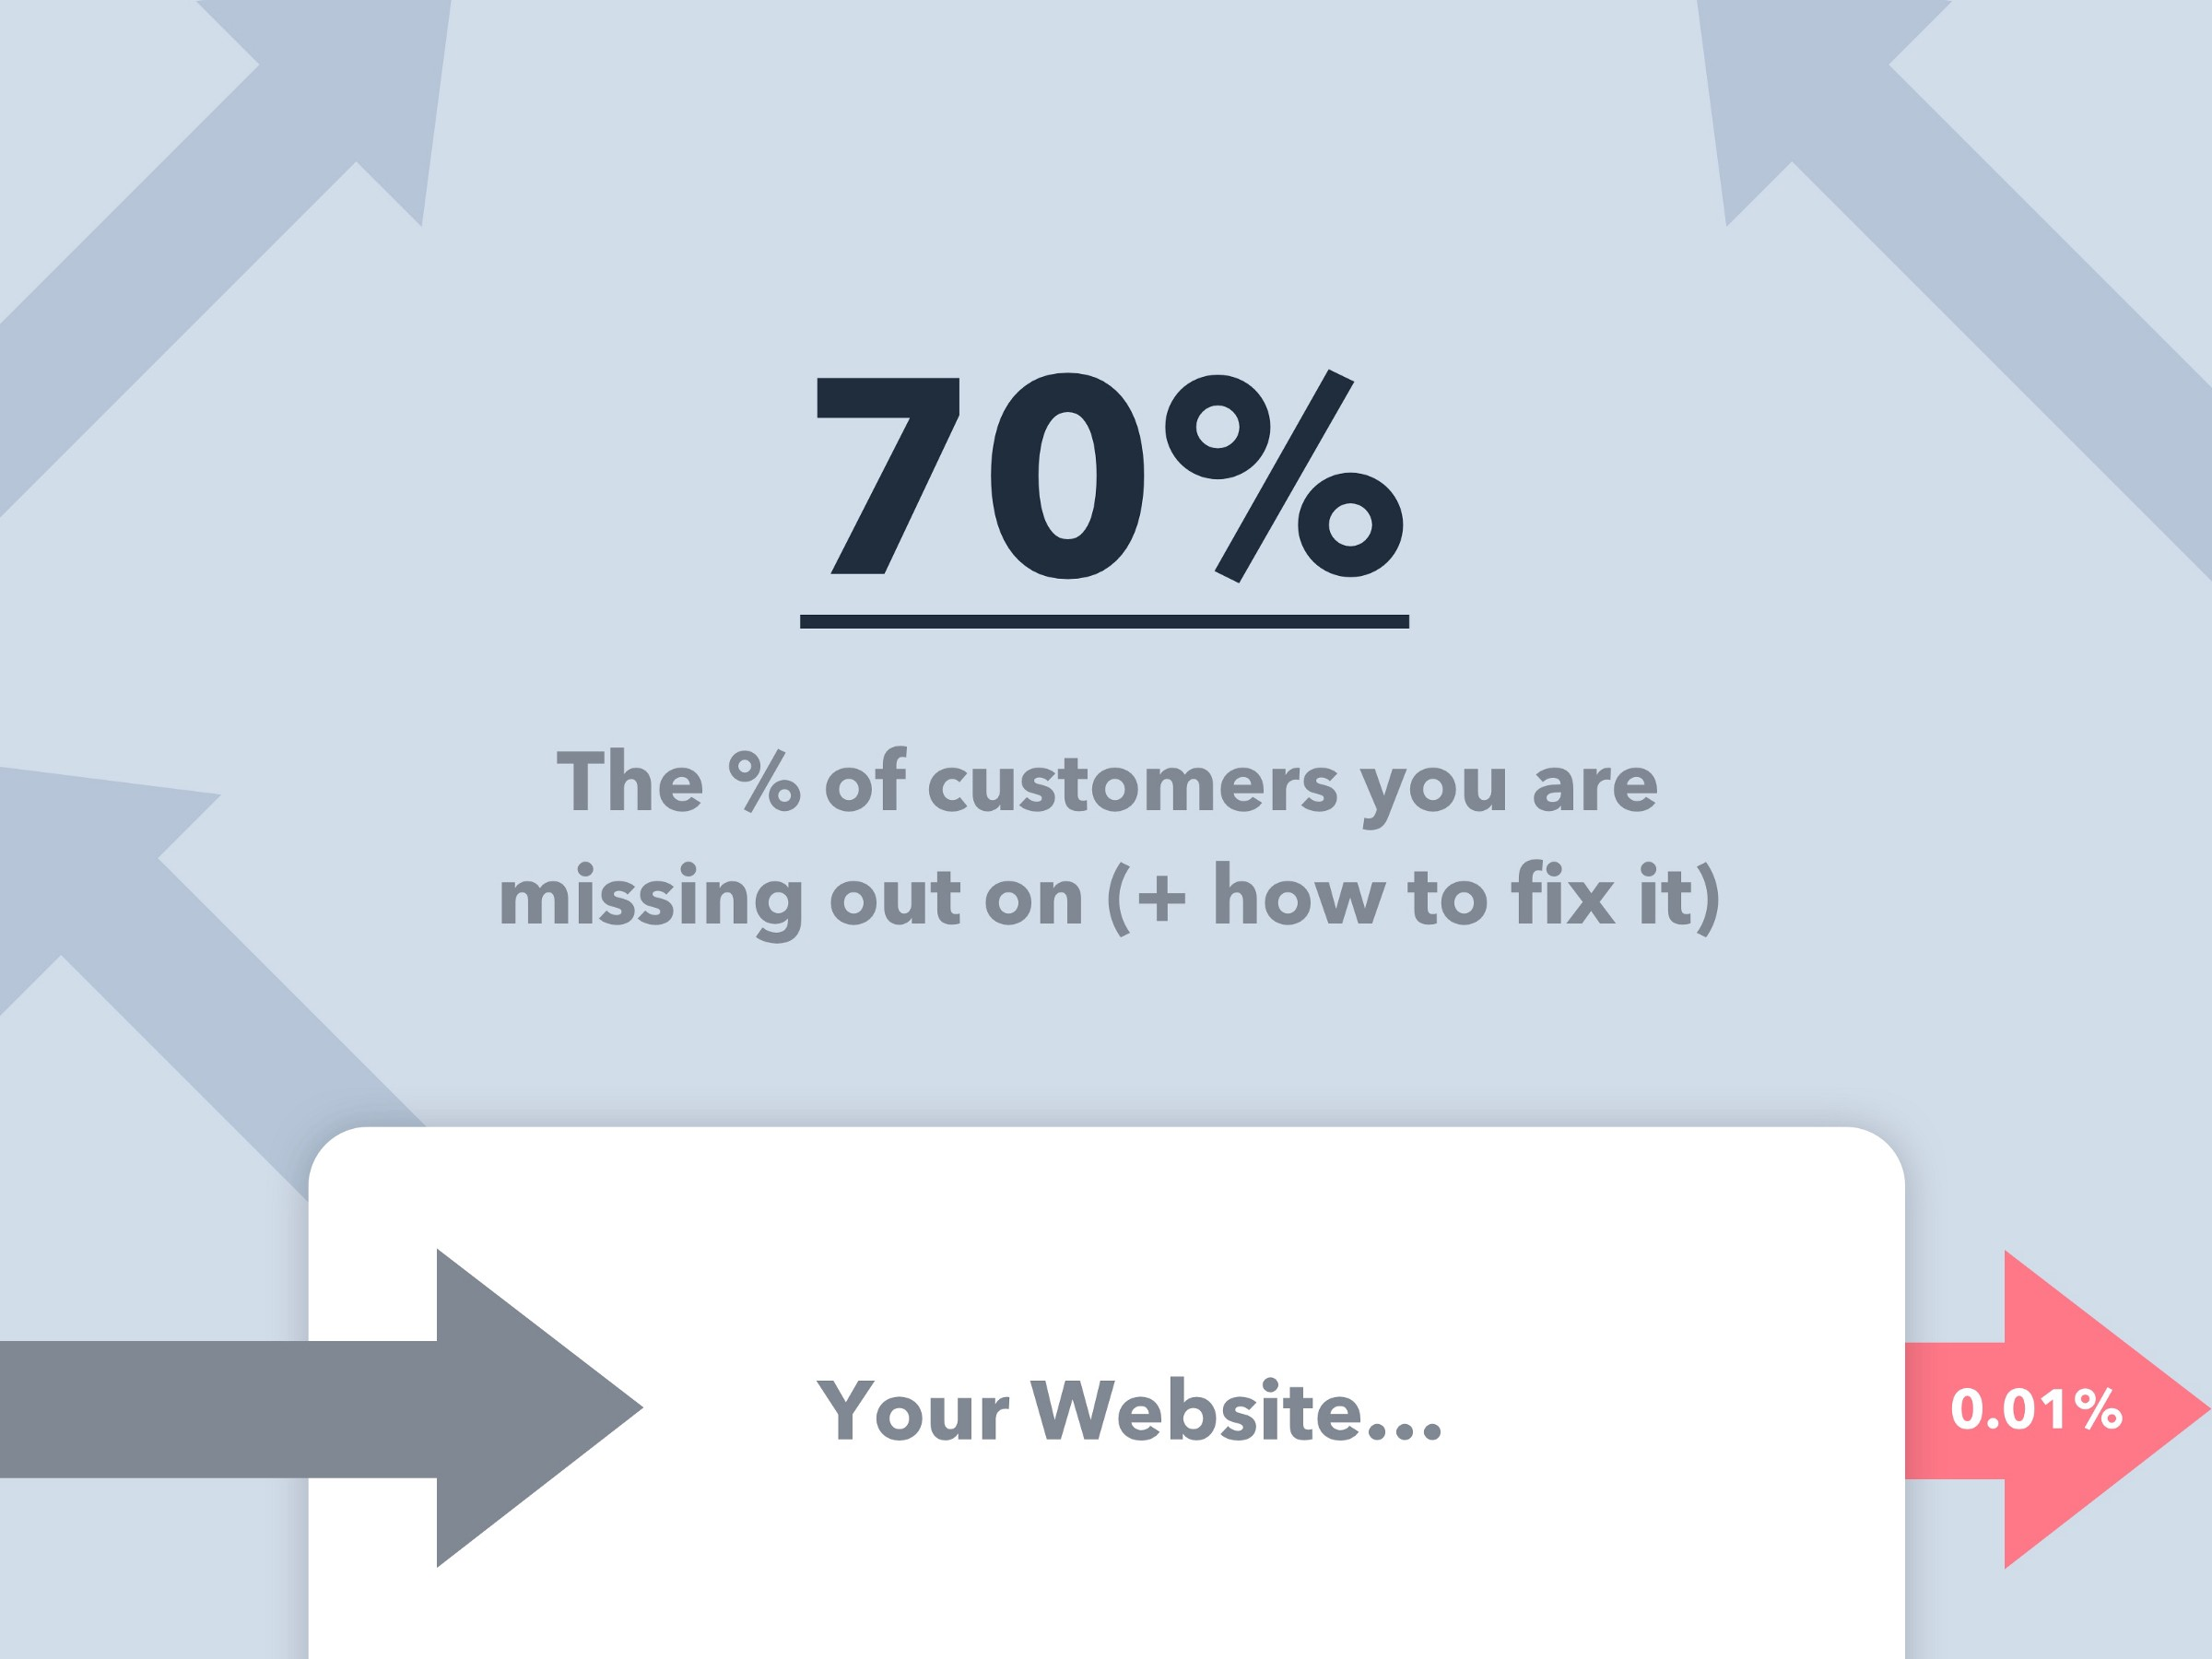 /why-saas-startups-are-missing-out-on-70-of-conversions-how-to-fix-it-11bd59770844 feature image